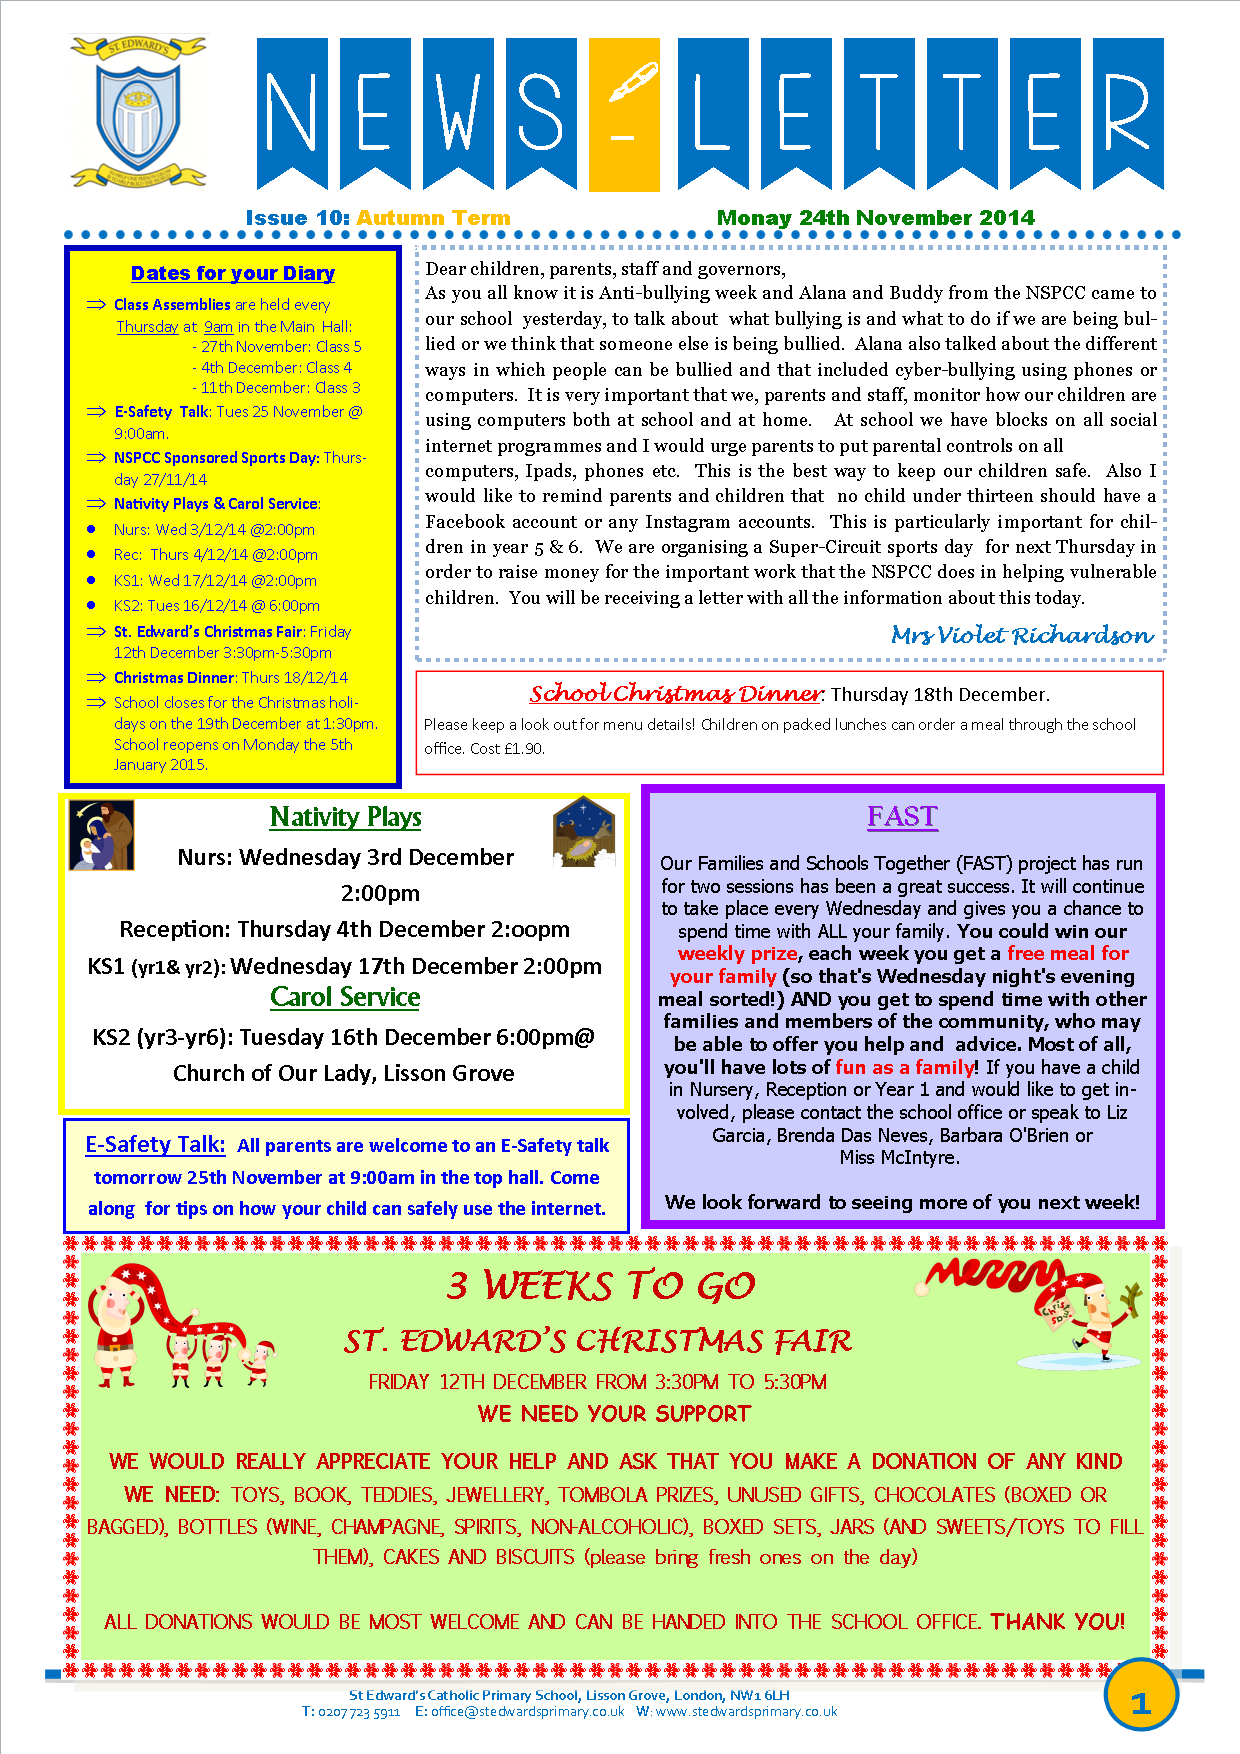 1St Edward's Newsletter Issue 10 24th November 2014.png